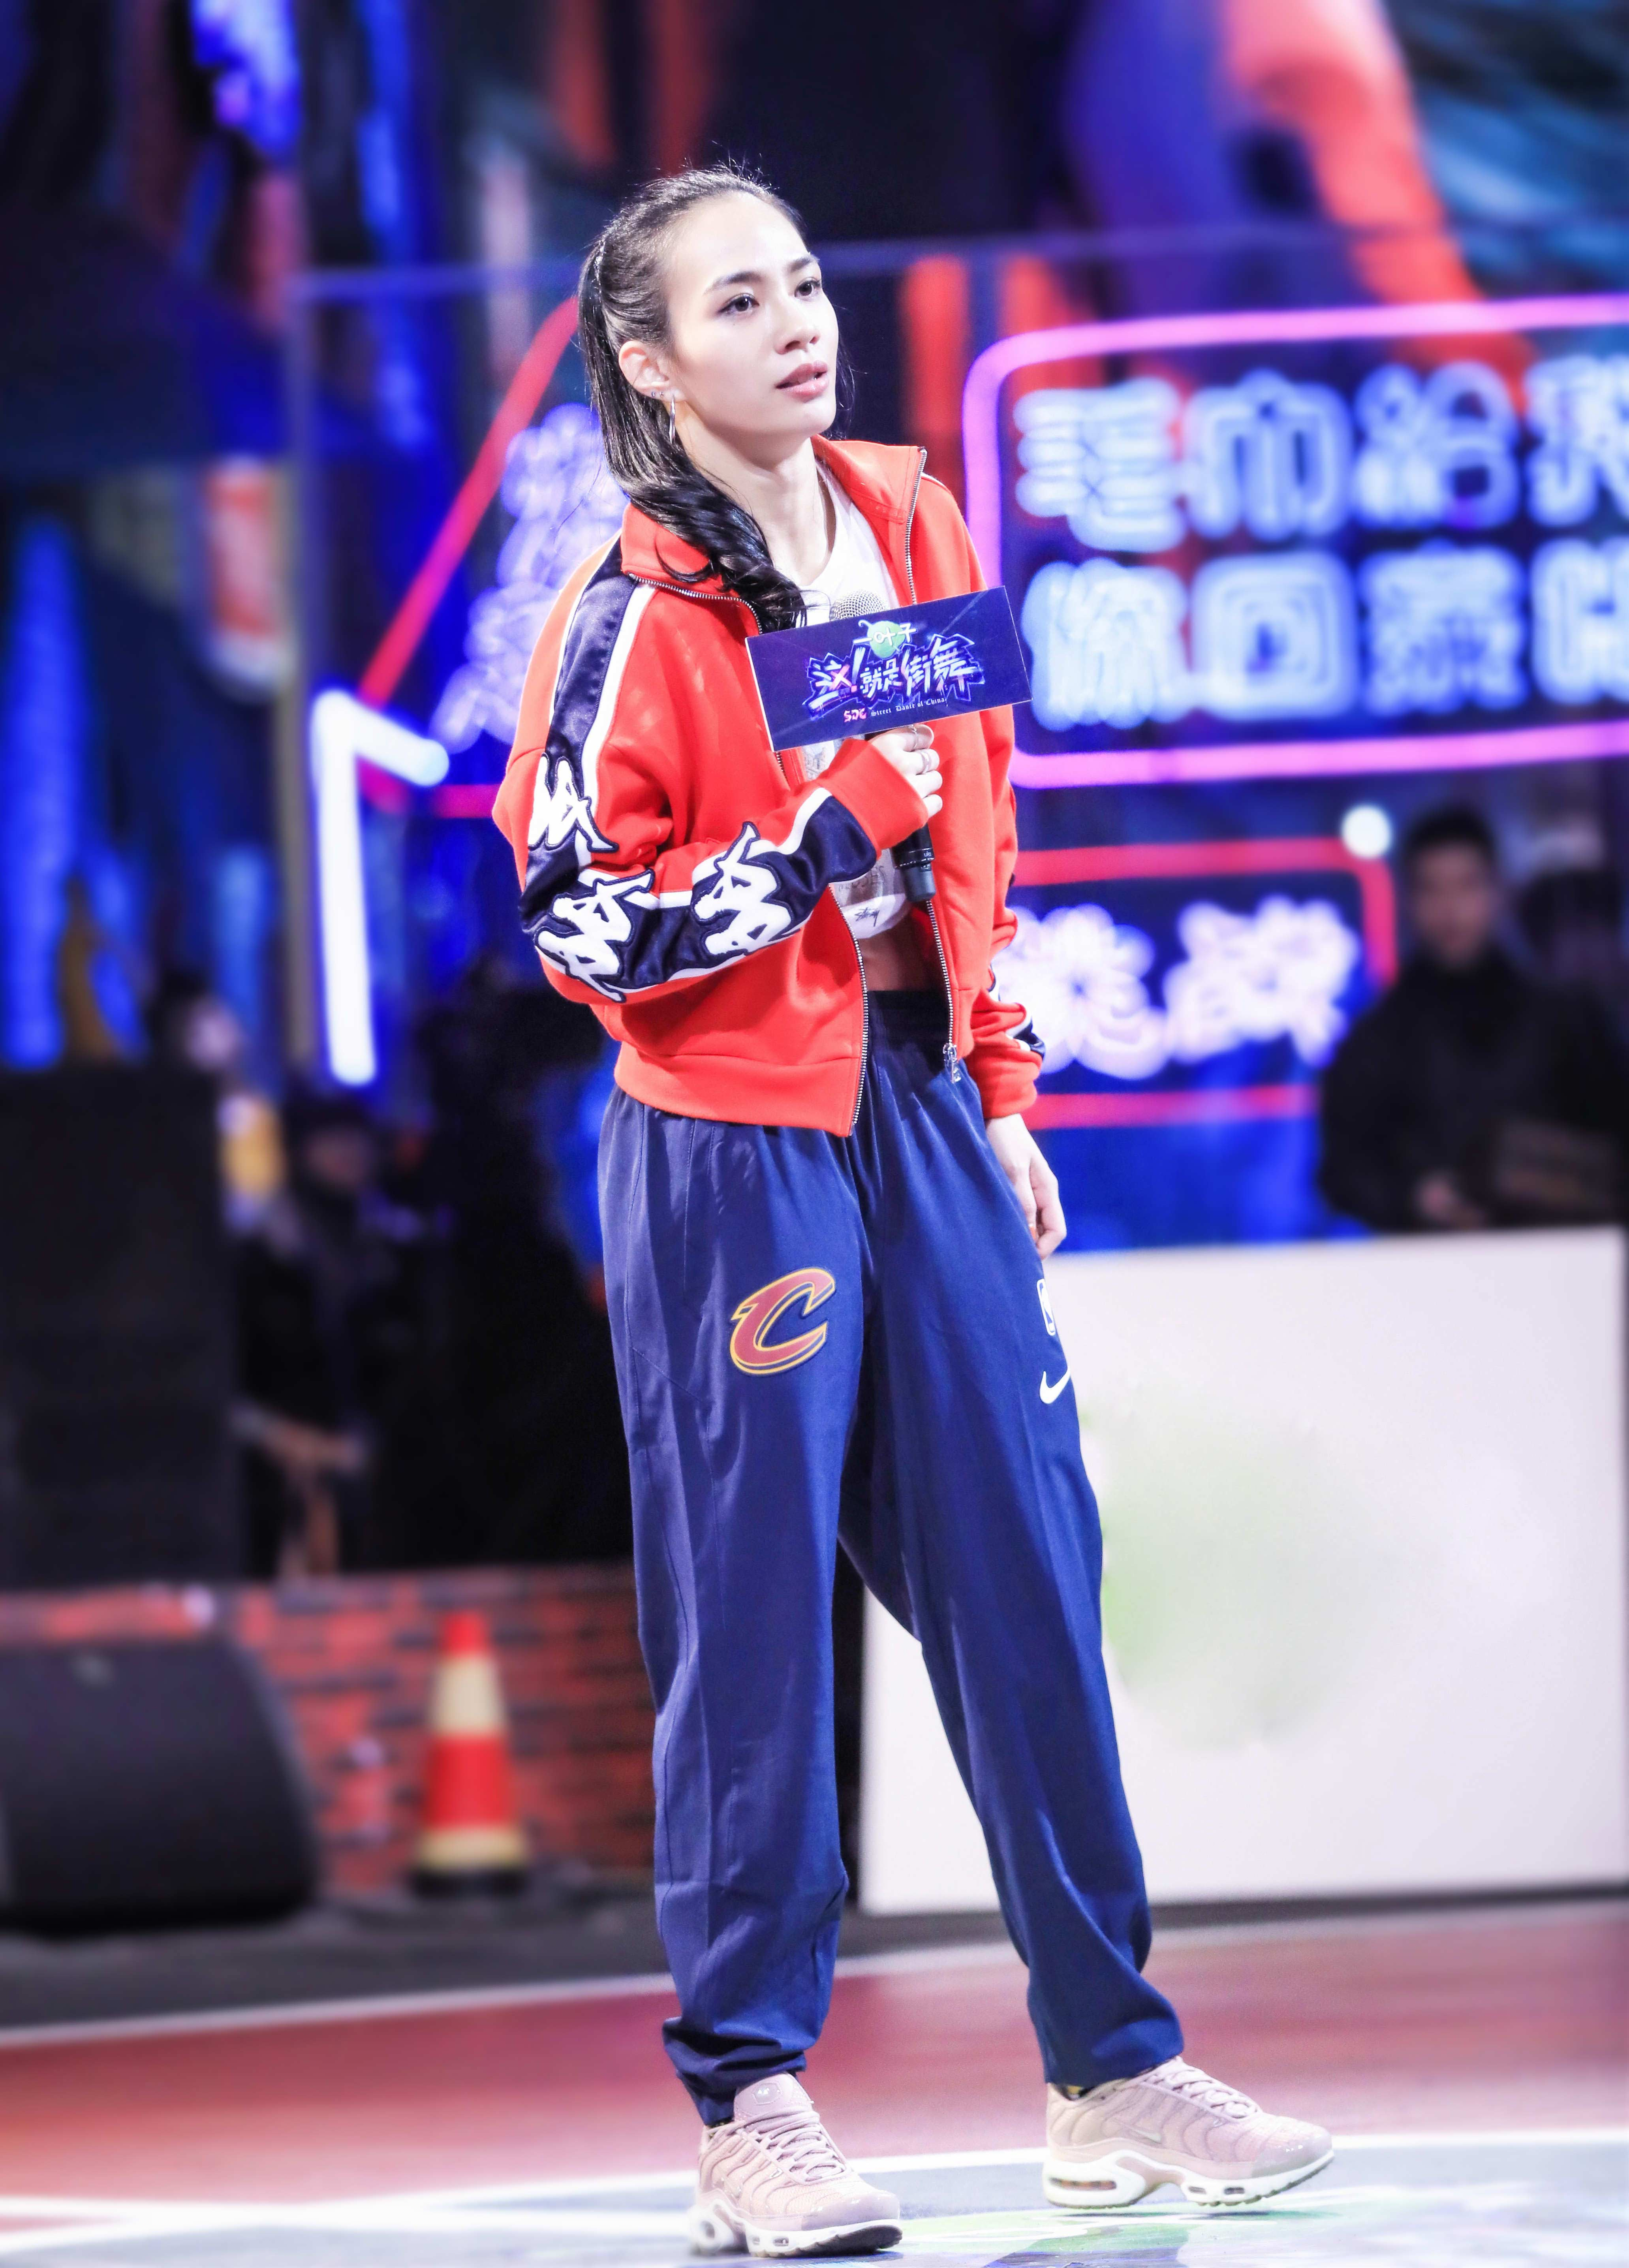 Nikki's promotion to the top 49 hip-hop dancers accidentally blocked by Z.TAO as 'Hiphop goddess